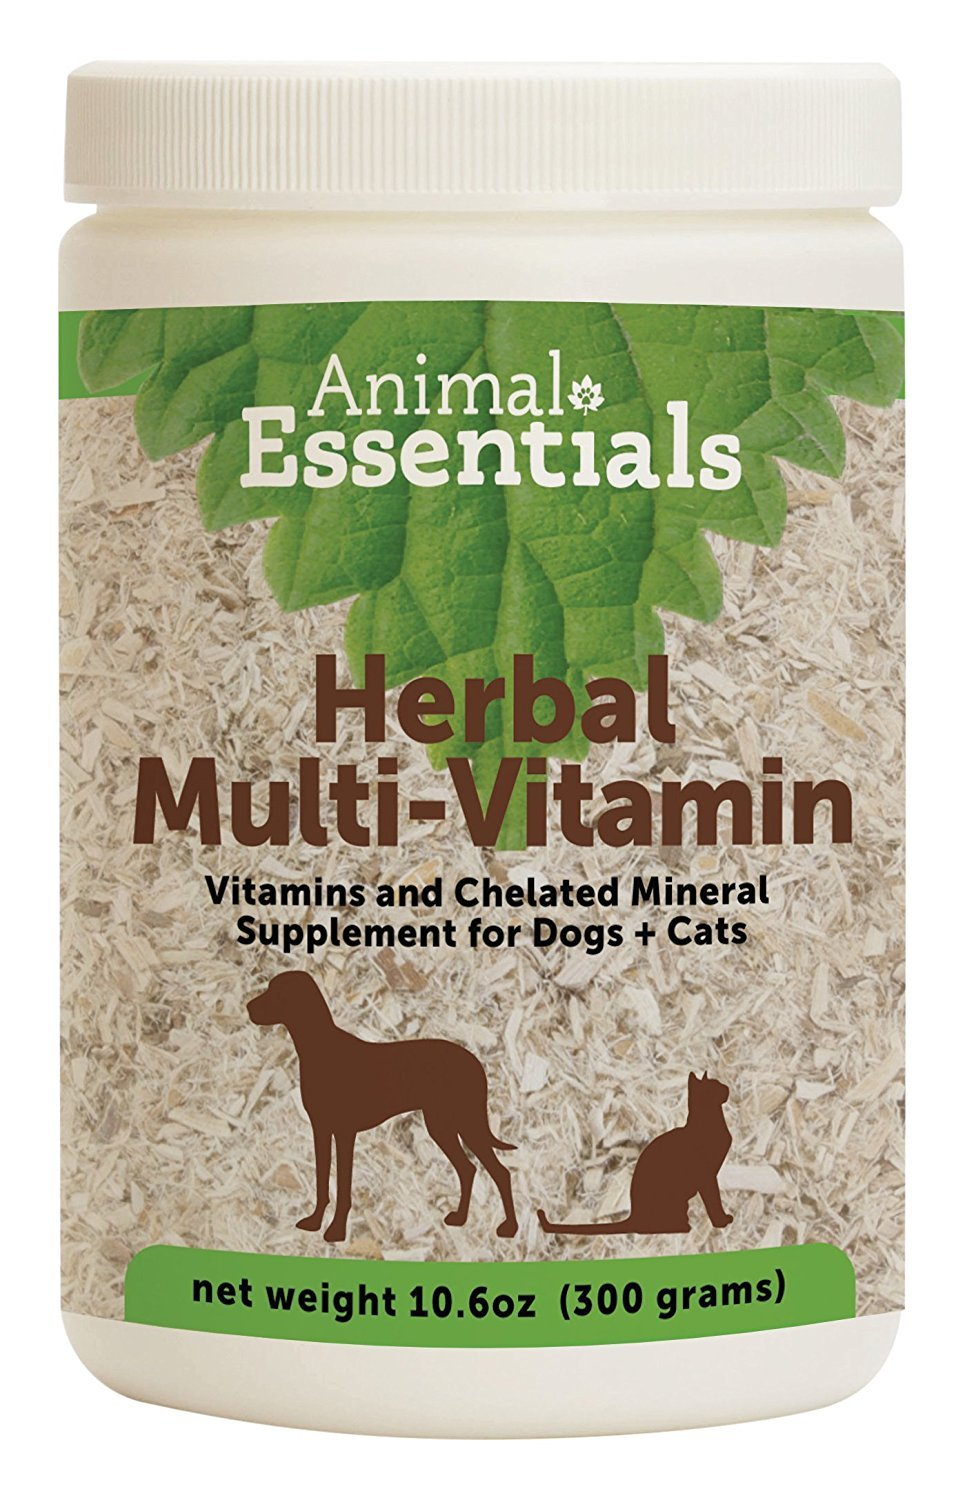 Animal Essentials Herbal Green Alternative Dog and Cat Supplement - 10.6 Ounce Jar (2 pack) by 0ANIV